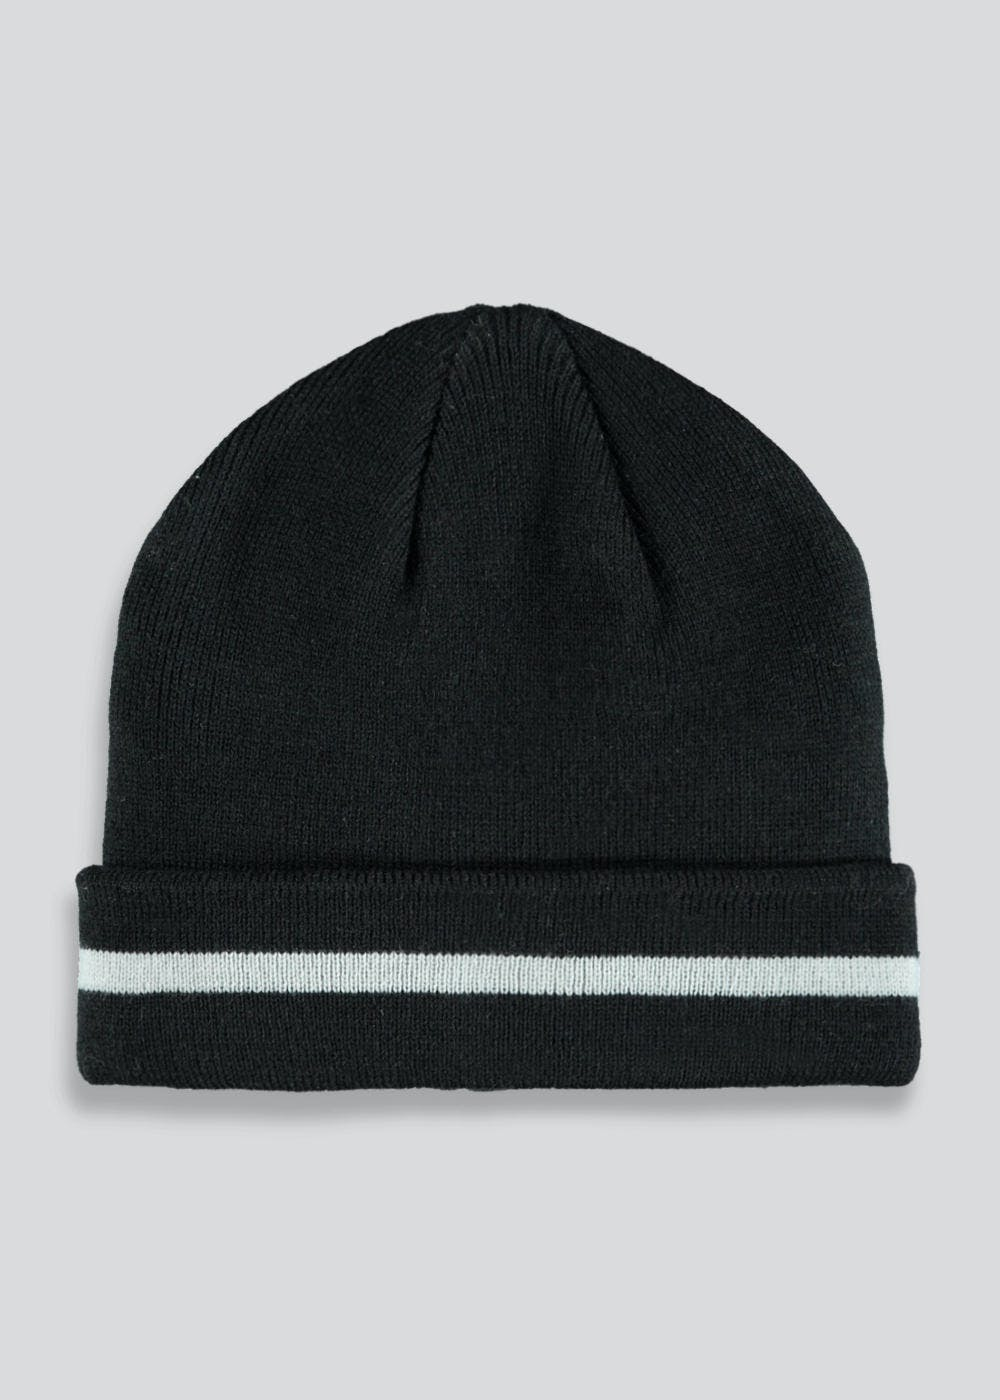 31247ac8454 Kids Turn Up Beanie Hat (One Size) – Black – Matalan